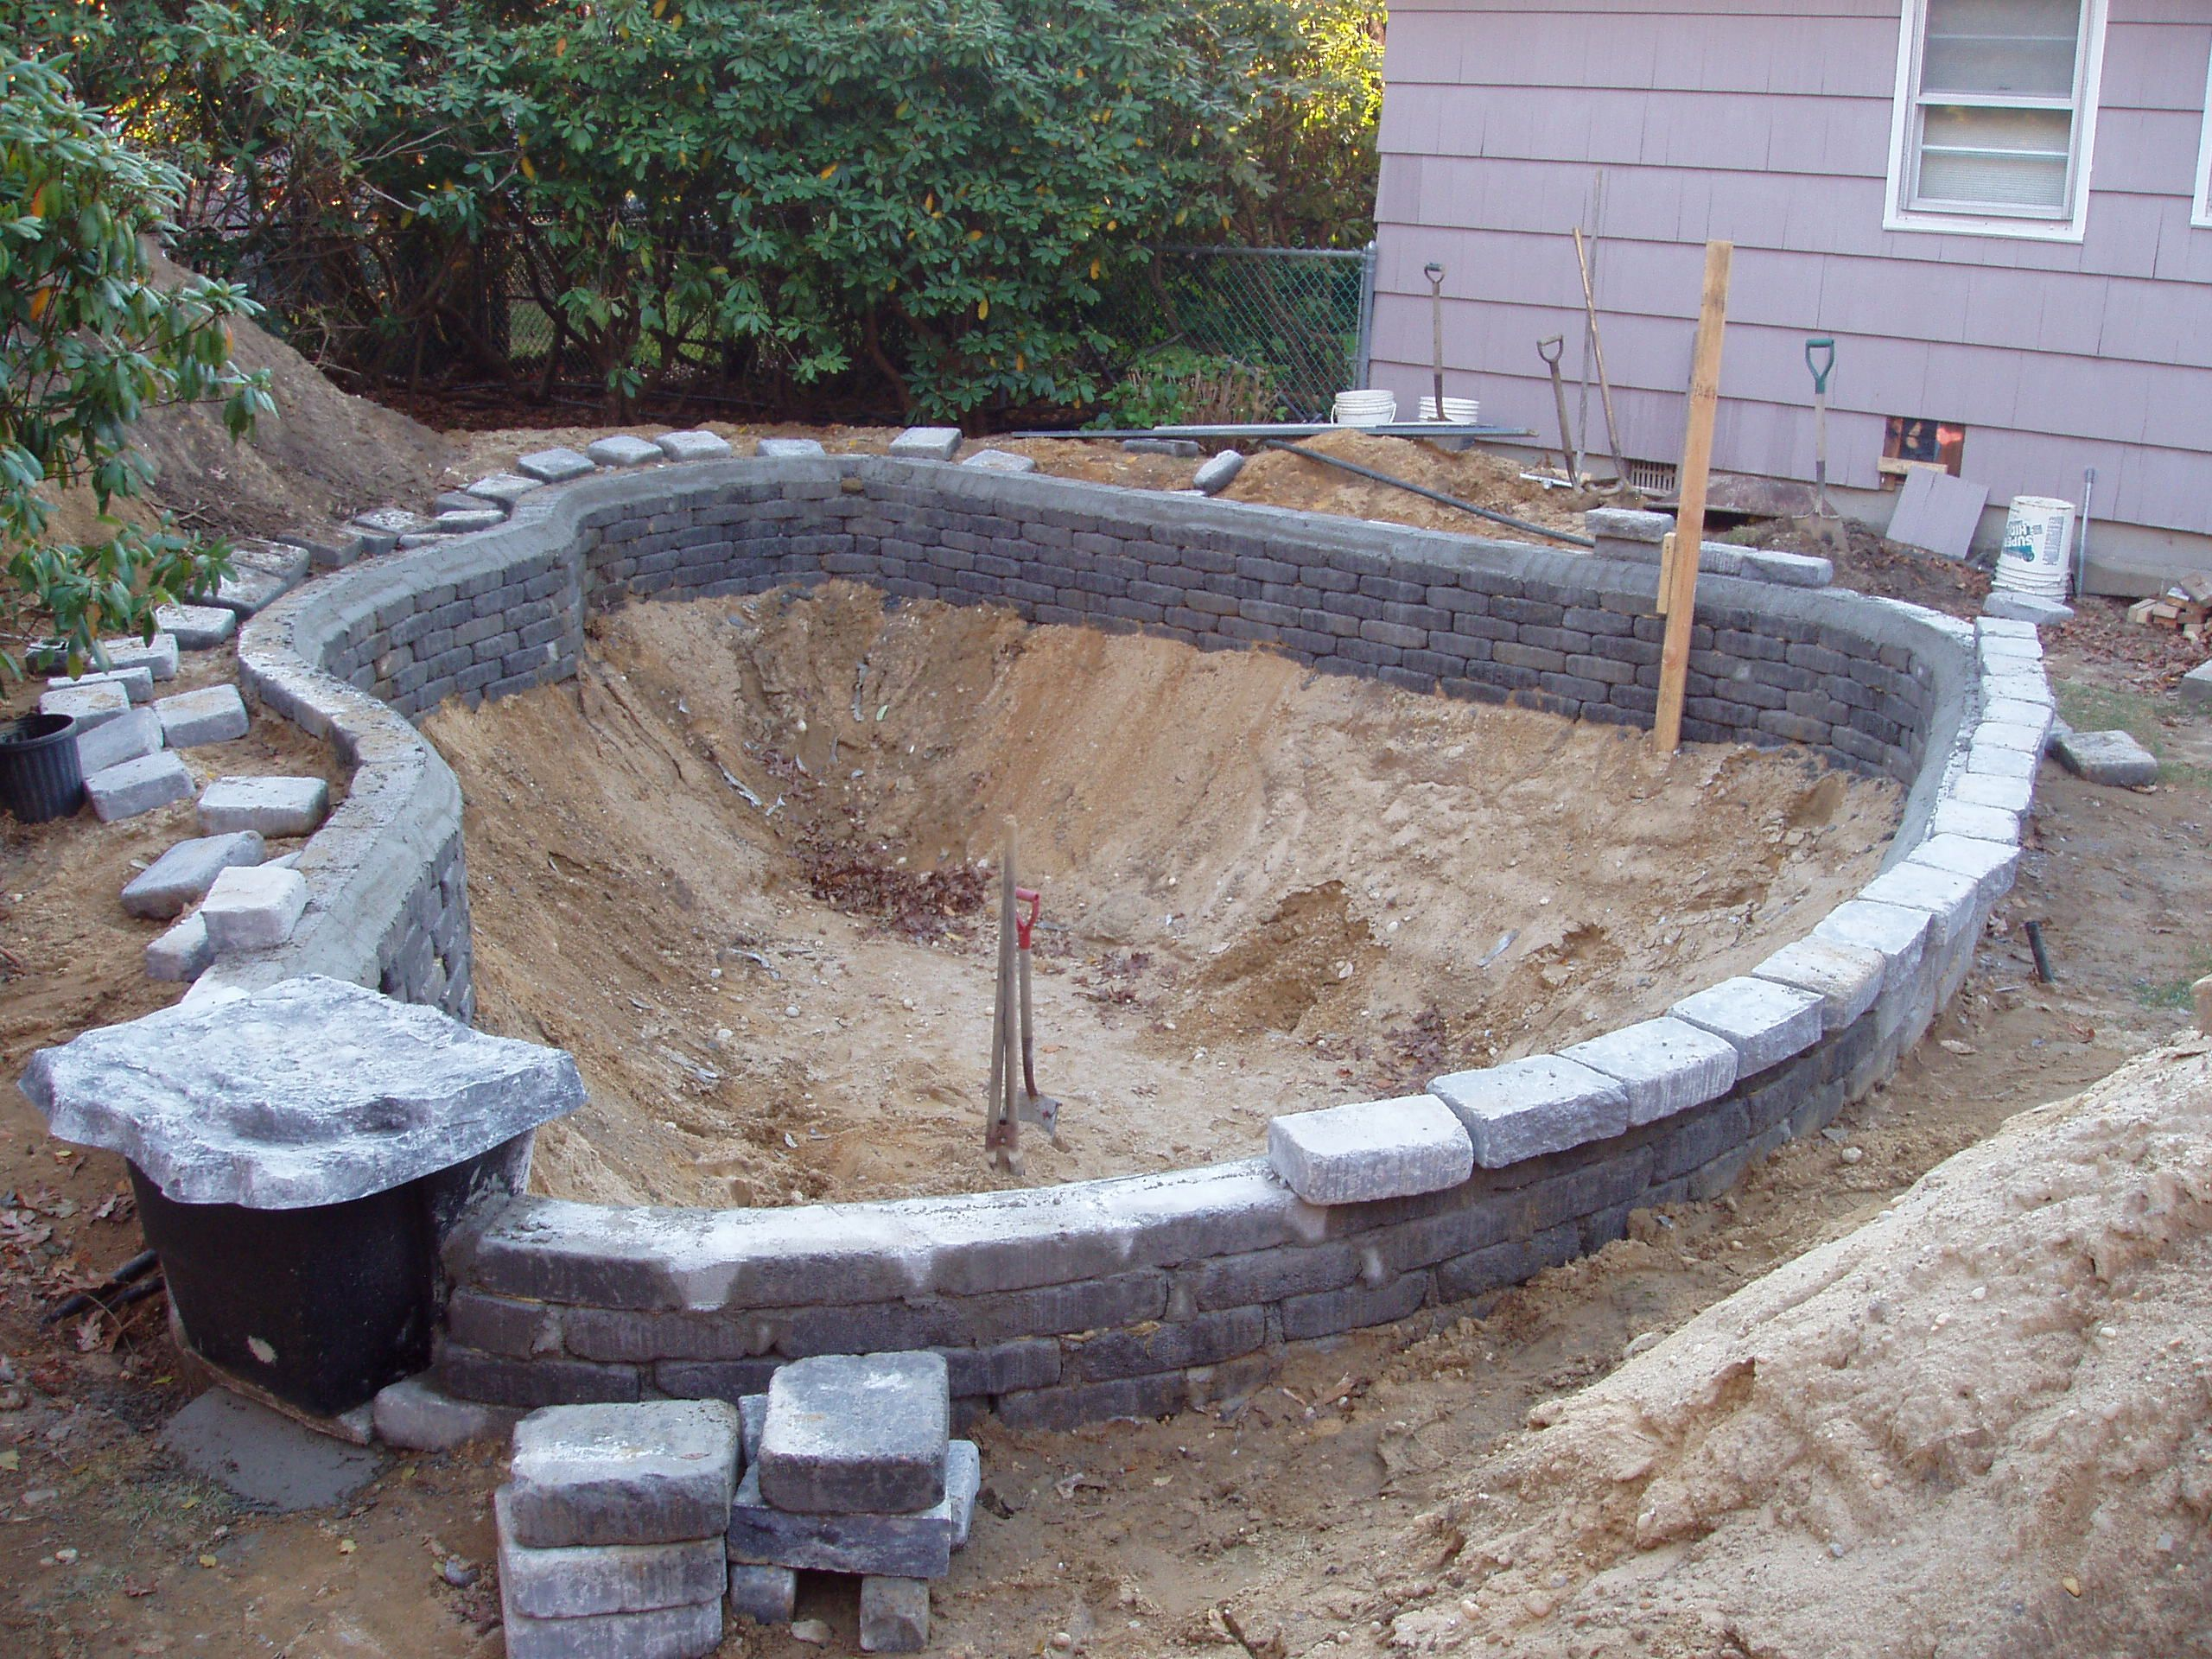 Pond design and construction google search aquaponics for Pond building ideas